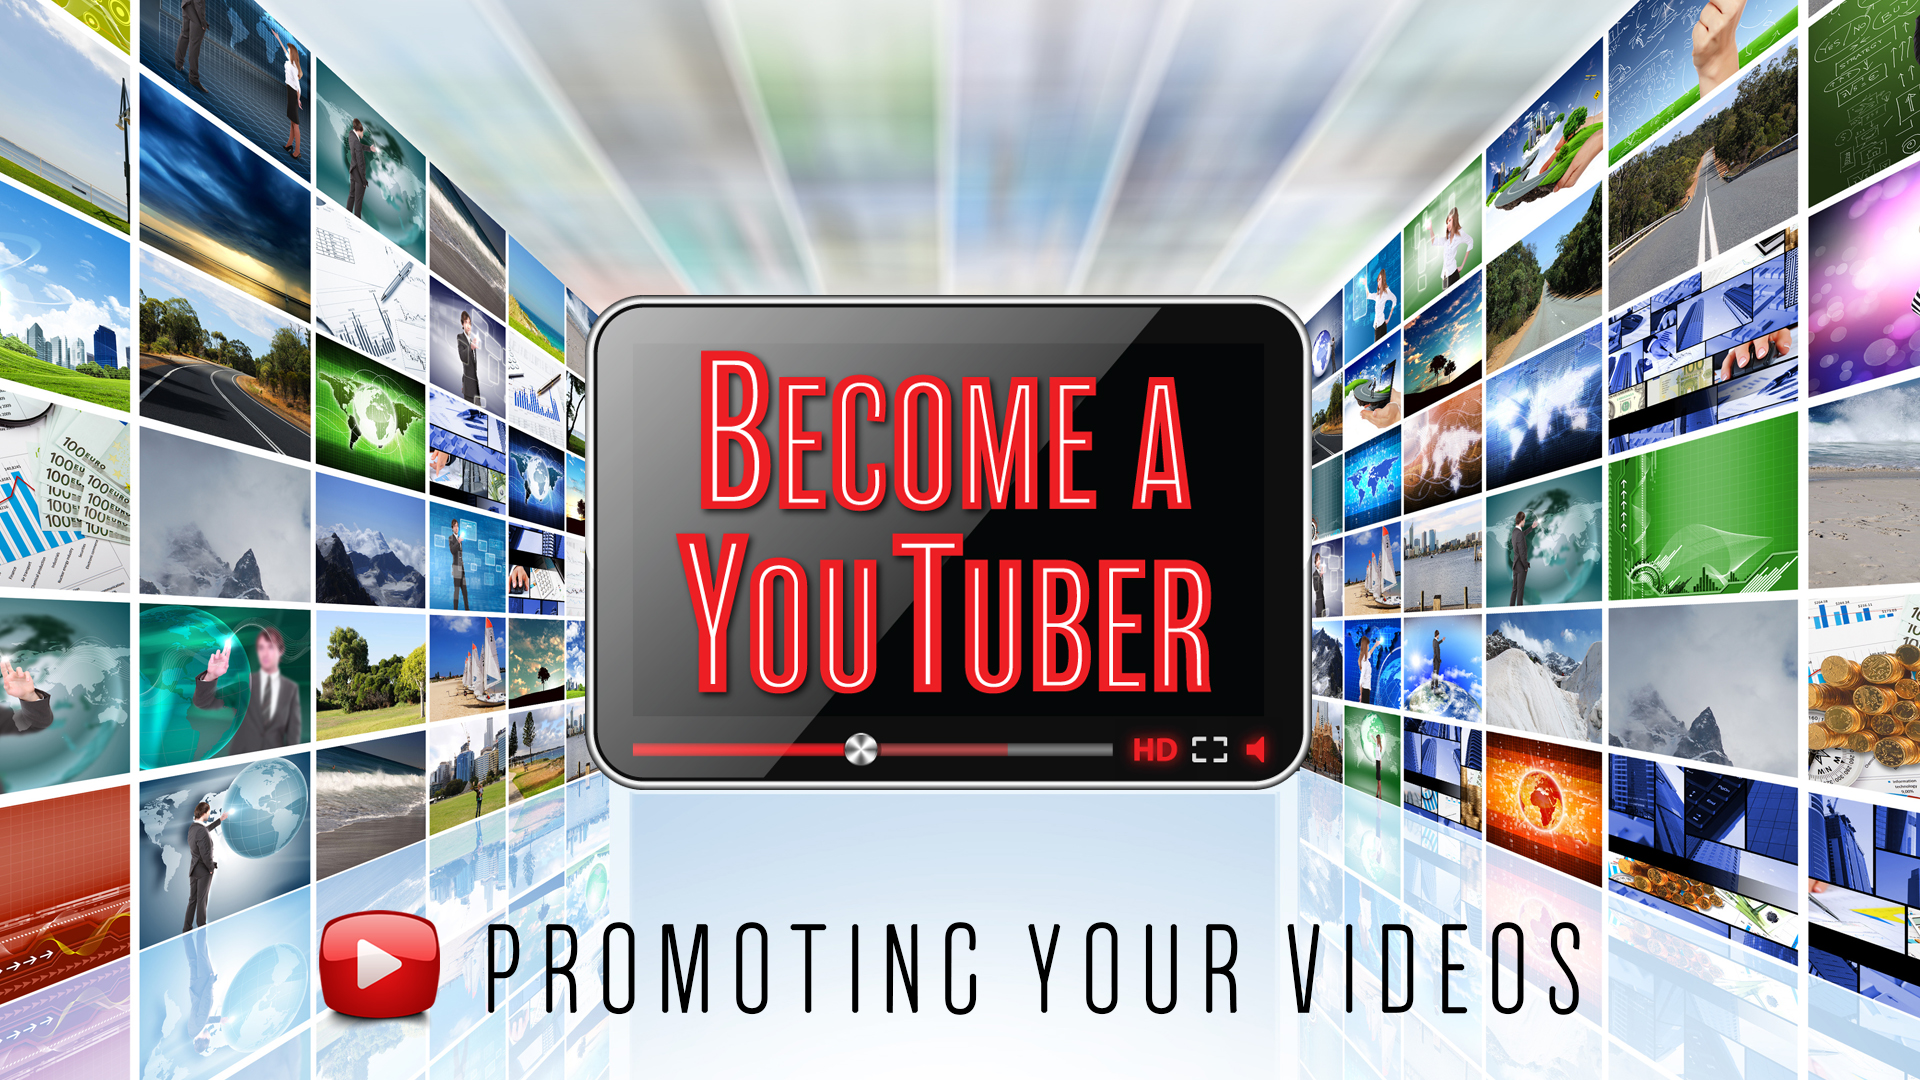 Promoting Your Videos